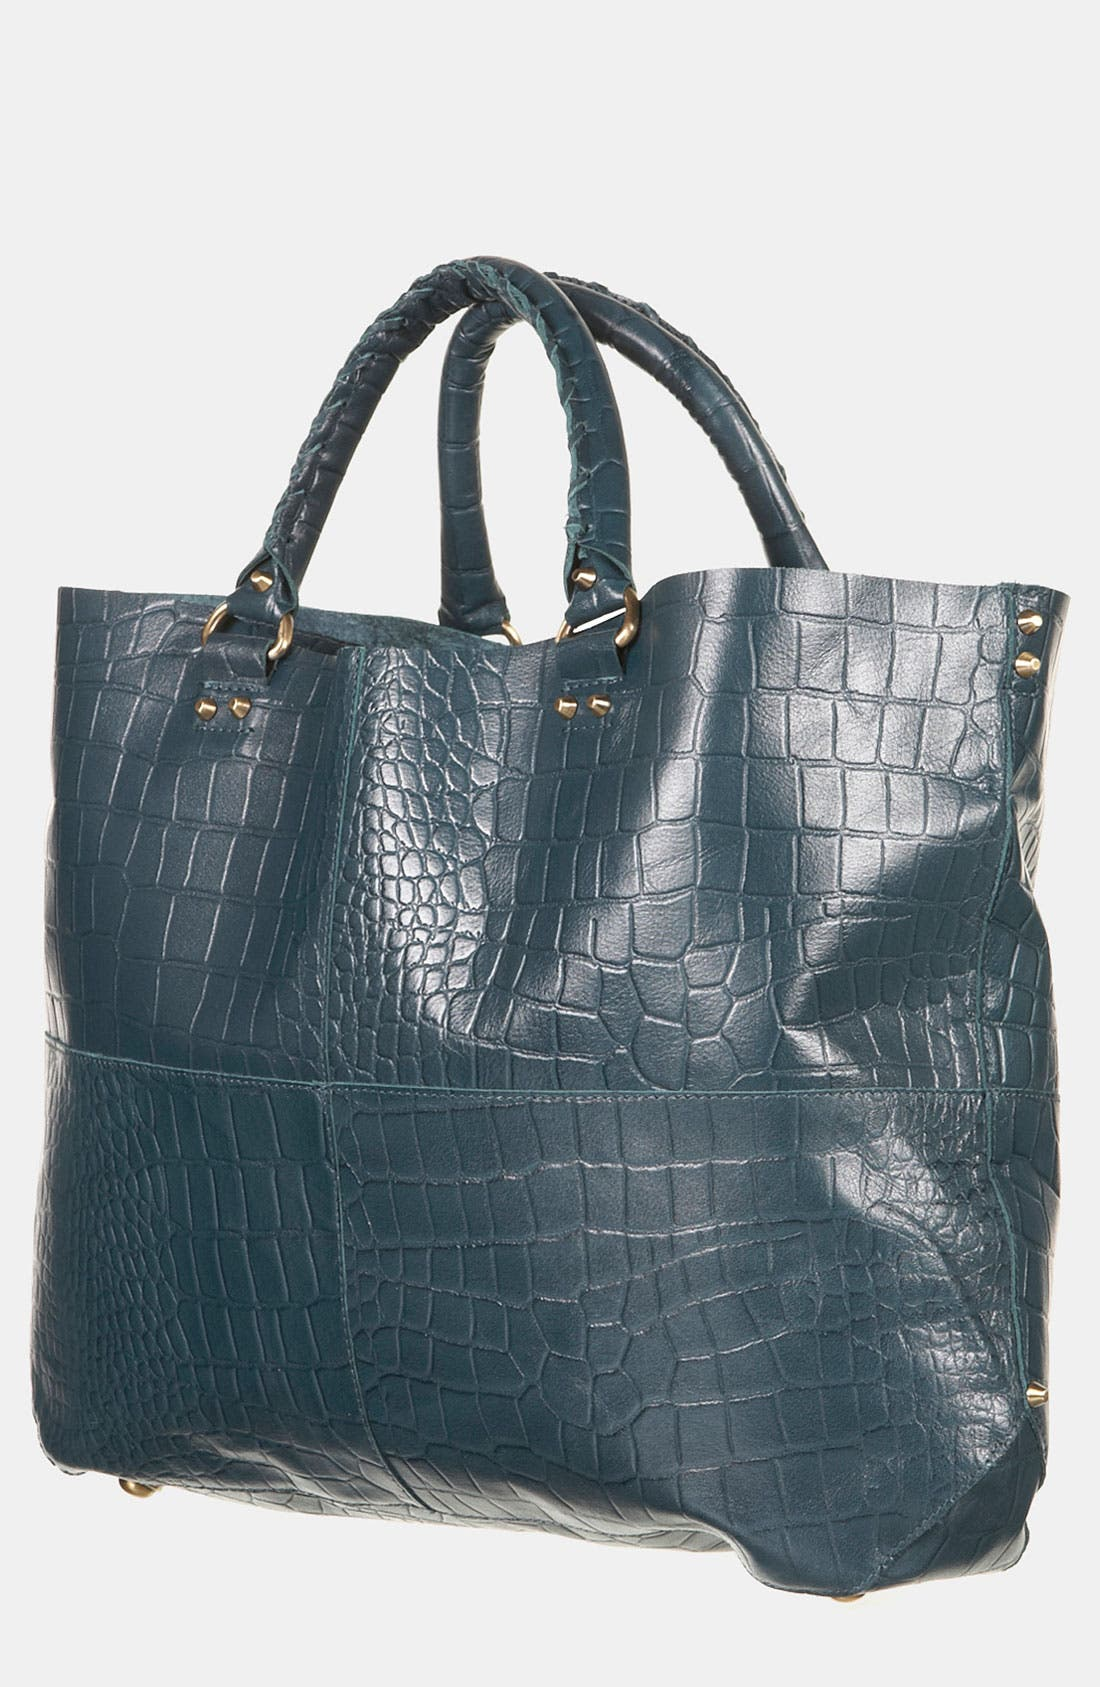 Alternate Image 1 Selected - Topshop 'Lady' Croc Embossed Tote